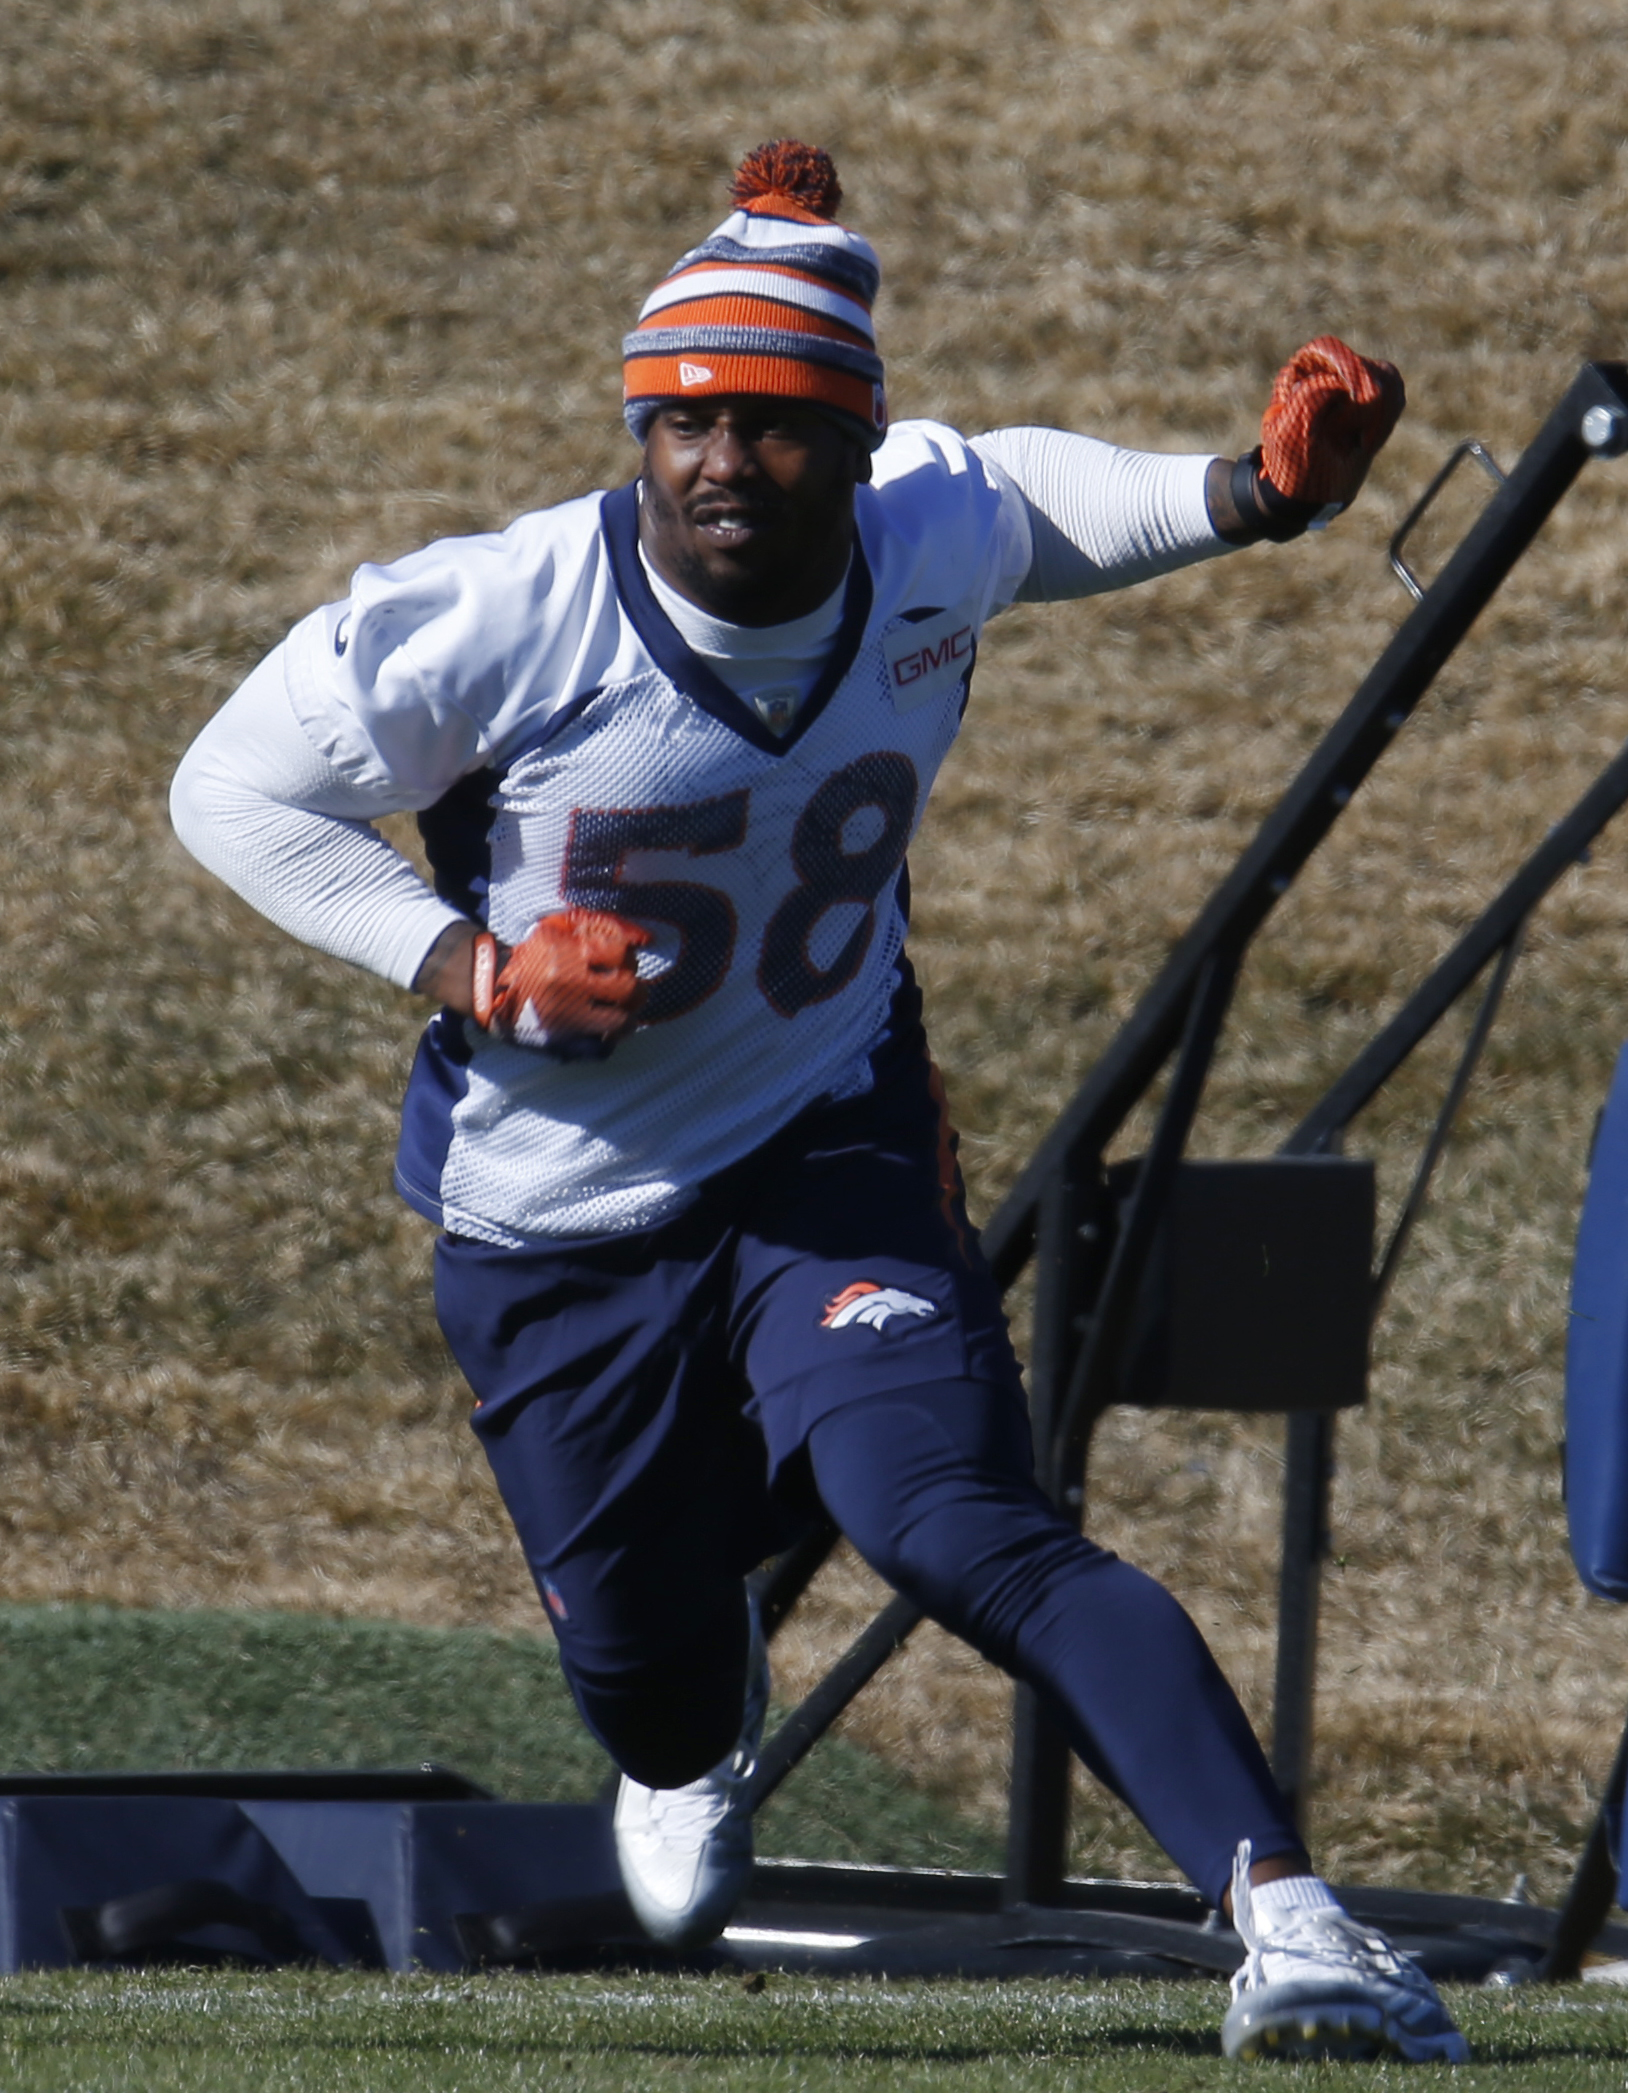 Denver Broncos outside linebacker Von Miller runs through a drill during an NFL football practice at the team's headquarters Thursday, Jan. 28, 2016, in Englewood, Colo. The Broncos are preparing to face the Carolina Panthers in the Super Bowl. (AP Photo/